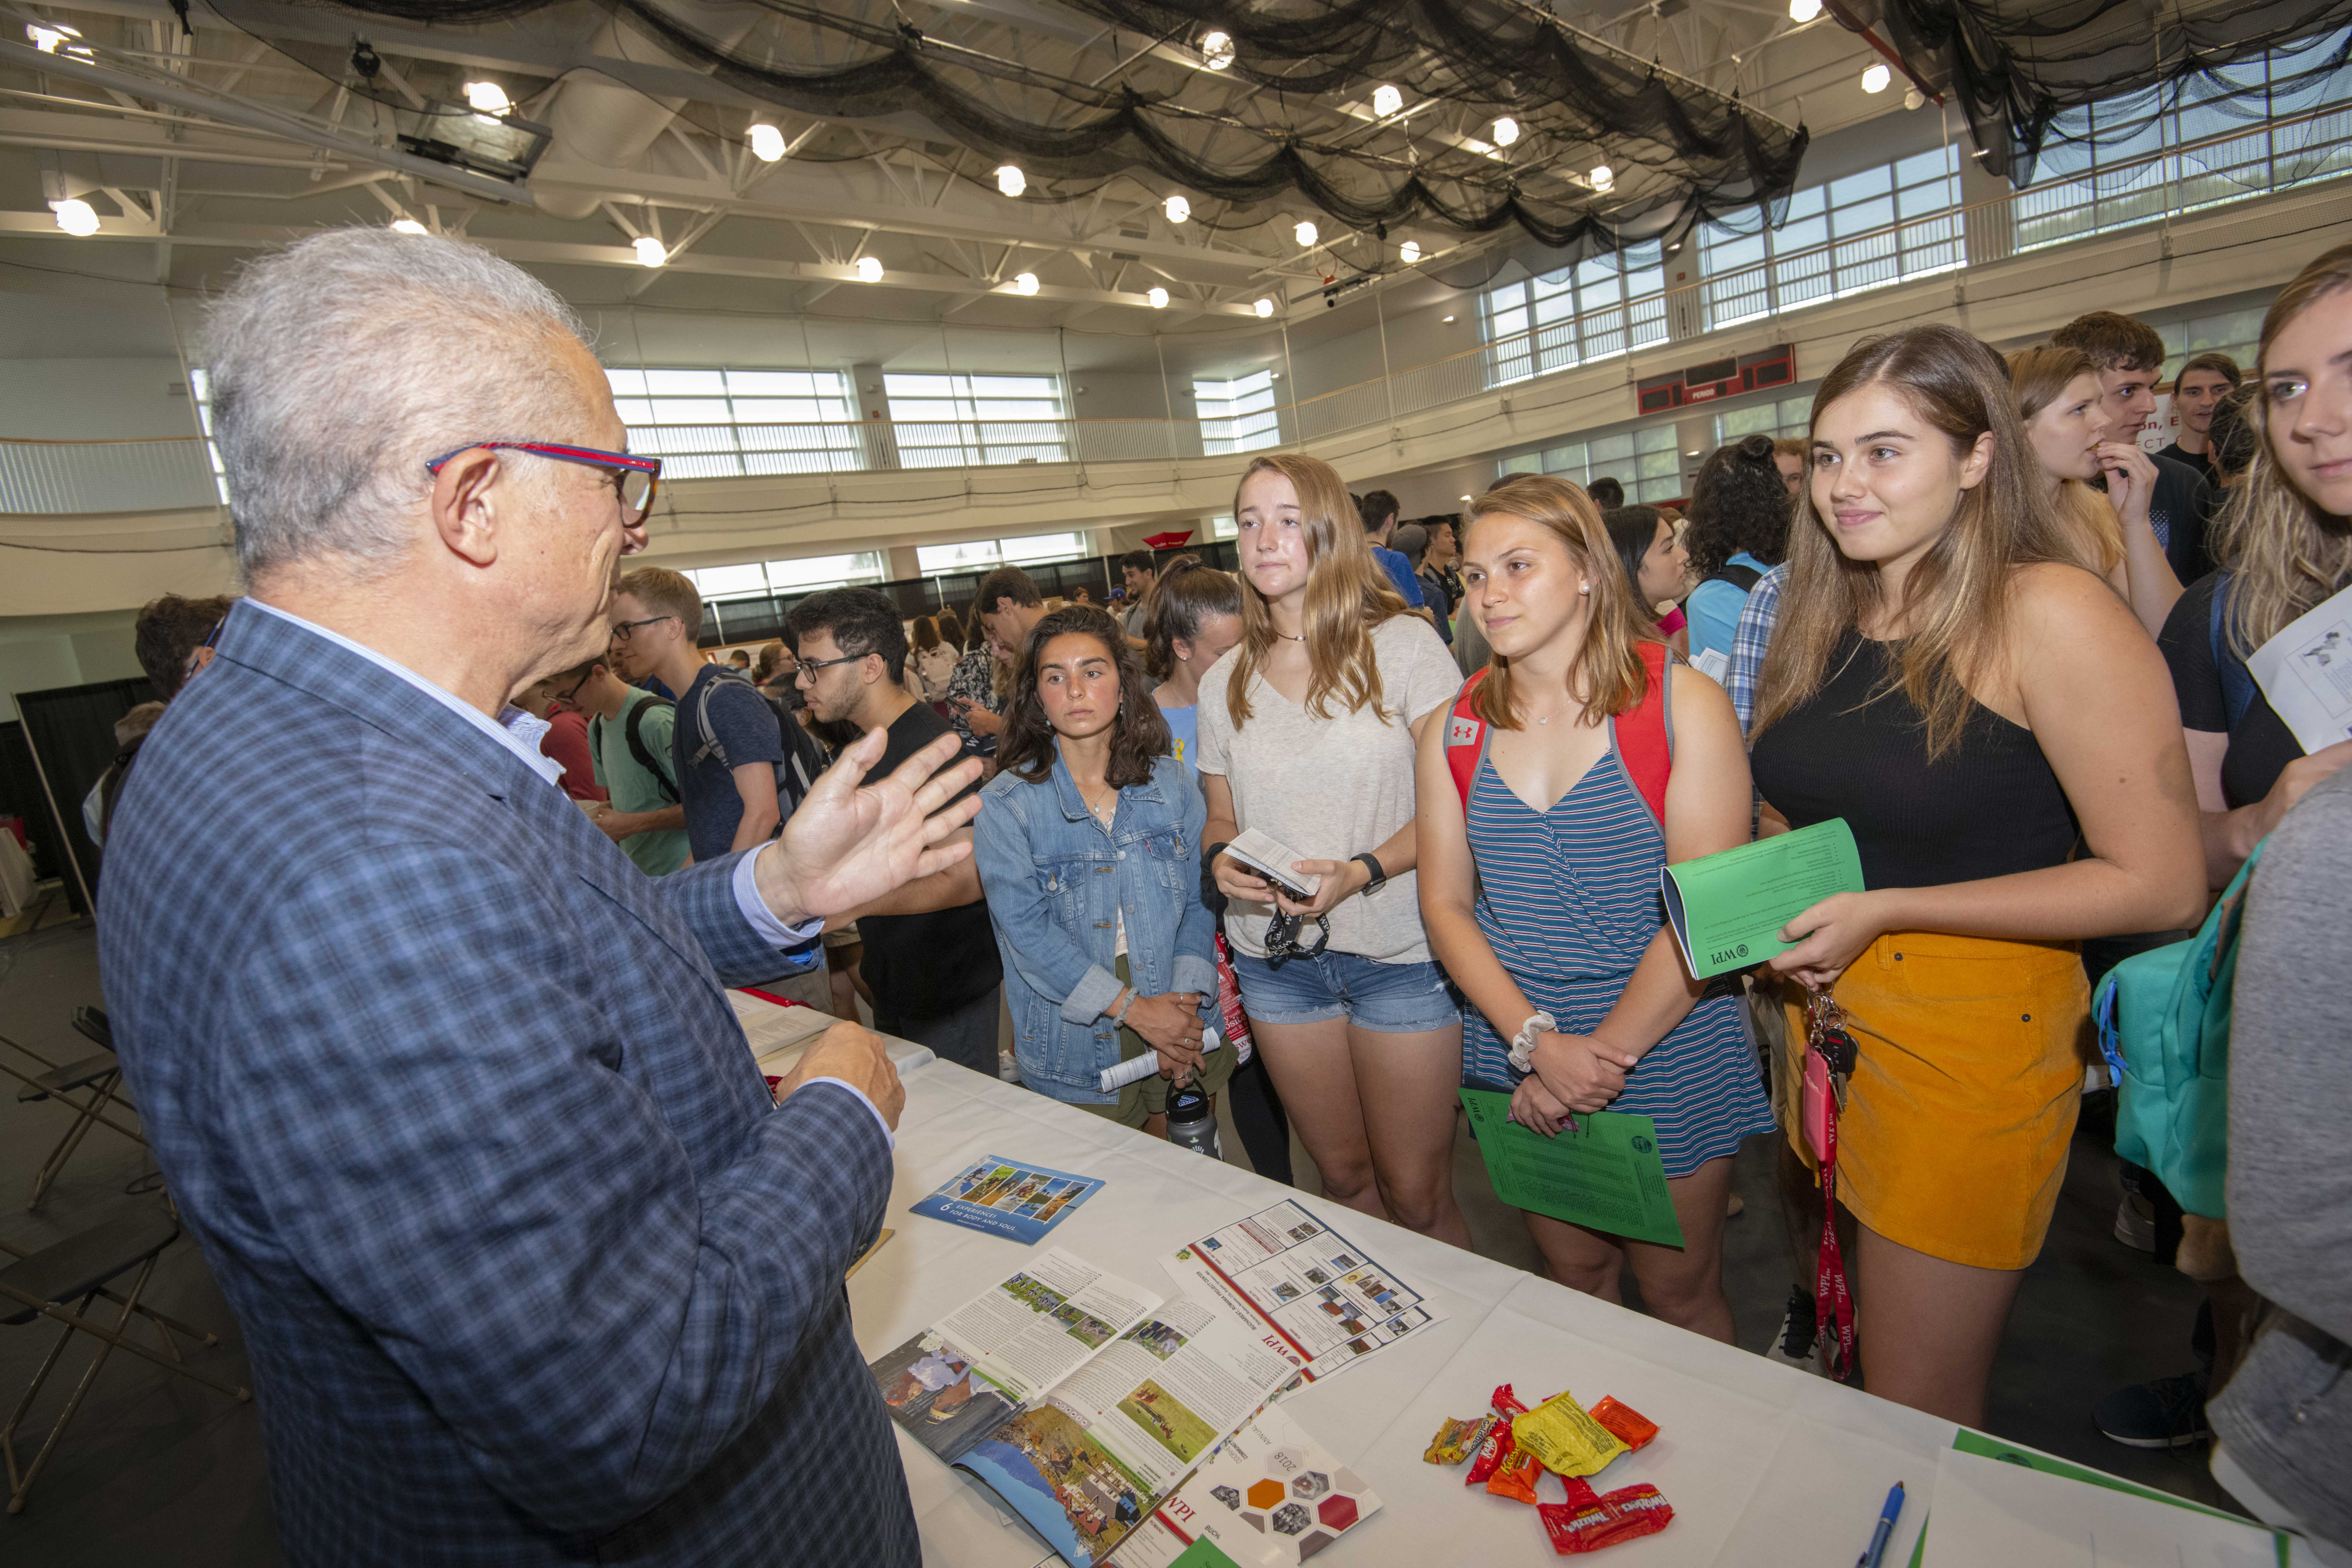 Students discuss a project center location with Vice Provost for Research, Bogdan Vernescu.